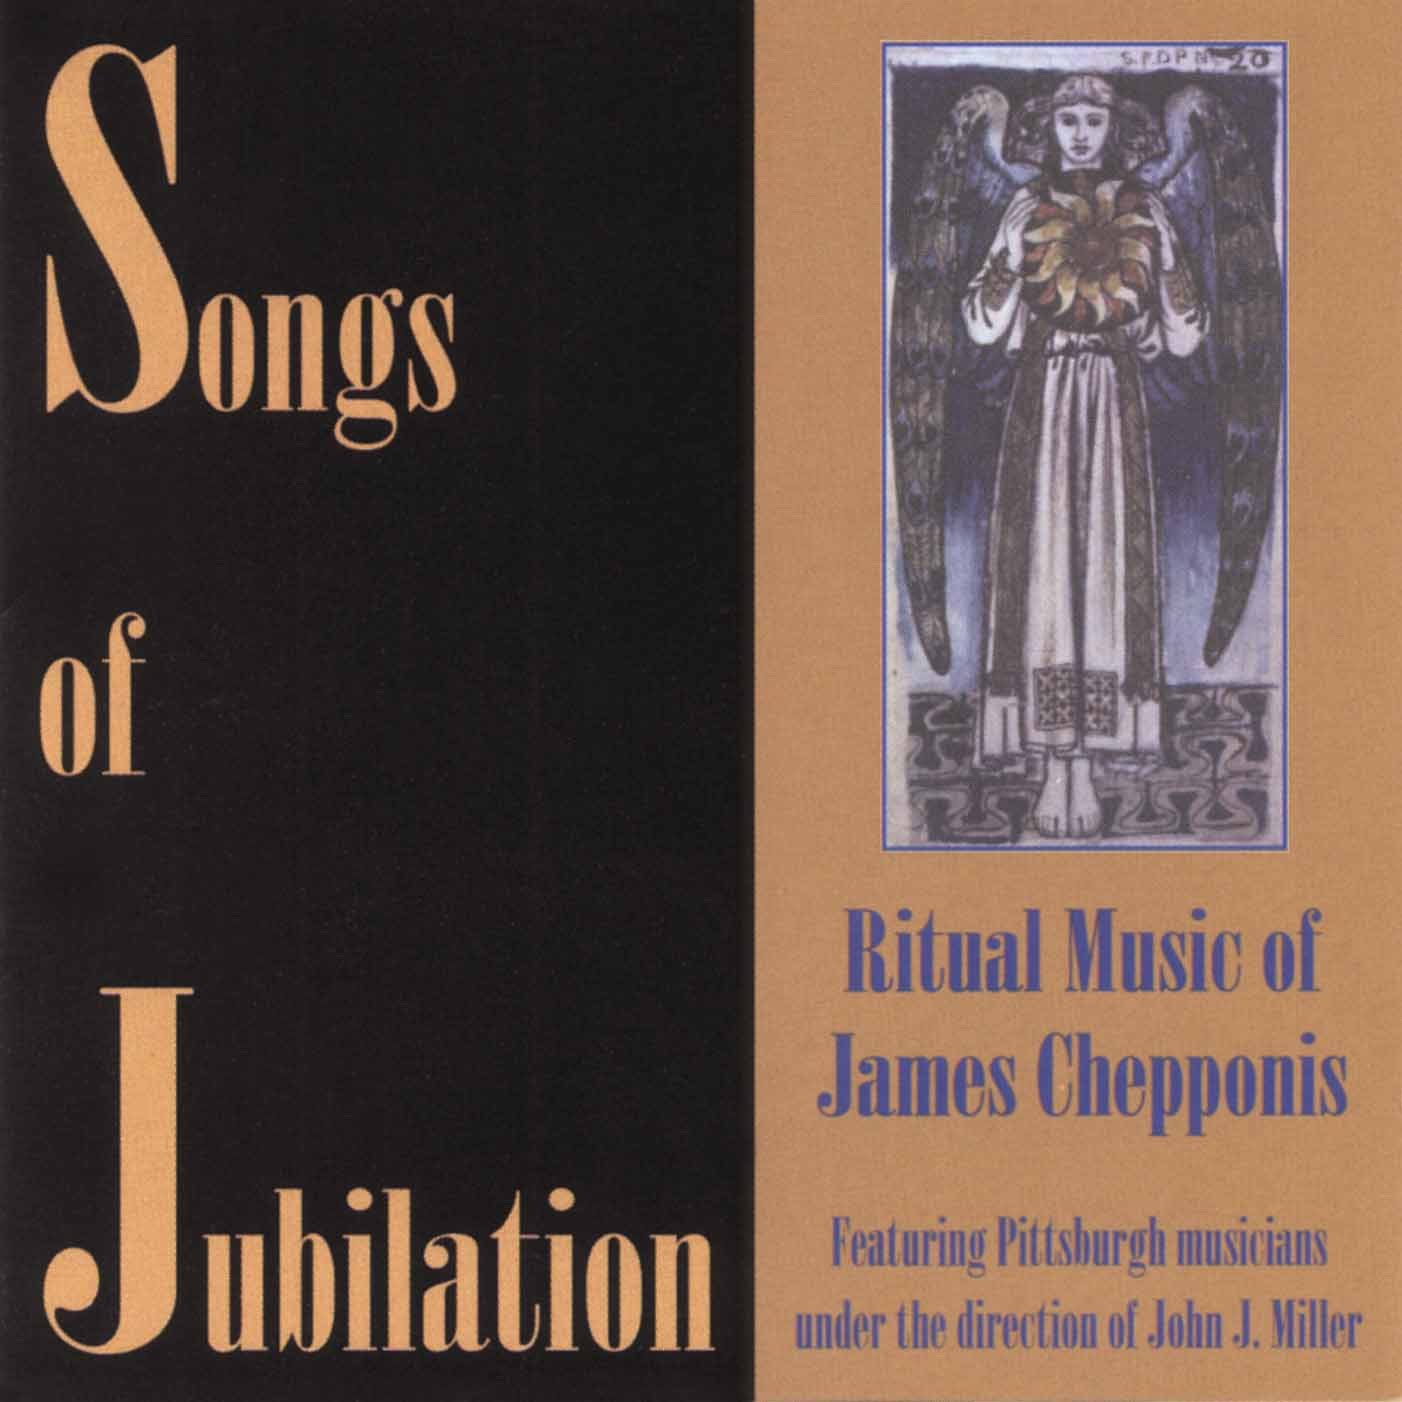 With Songs of Jubilation